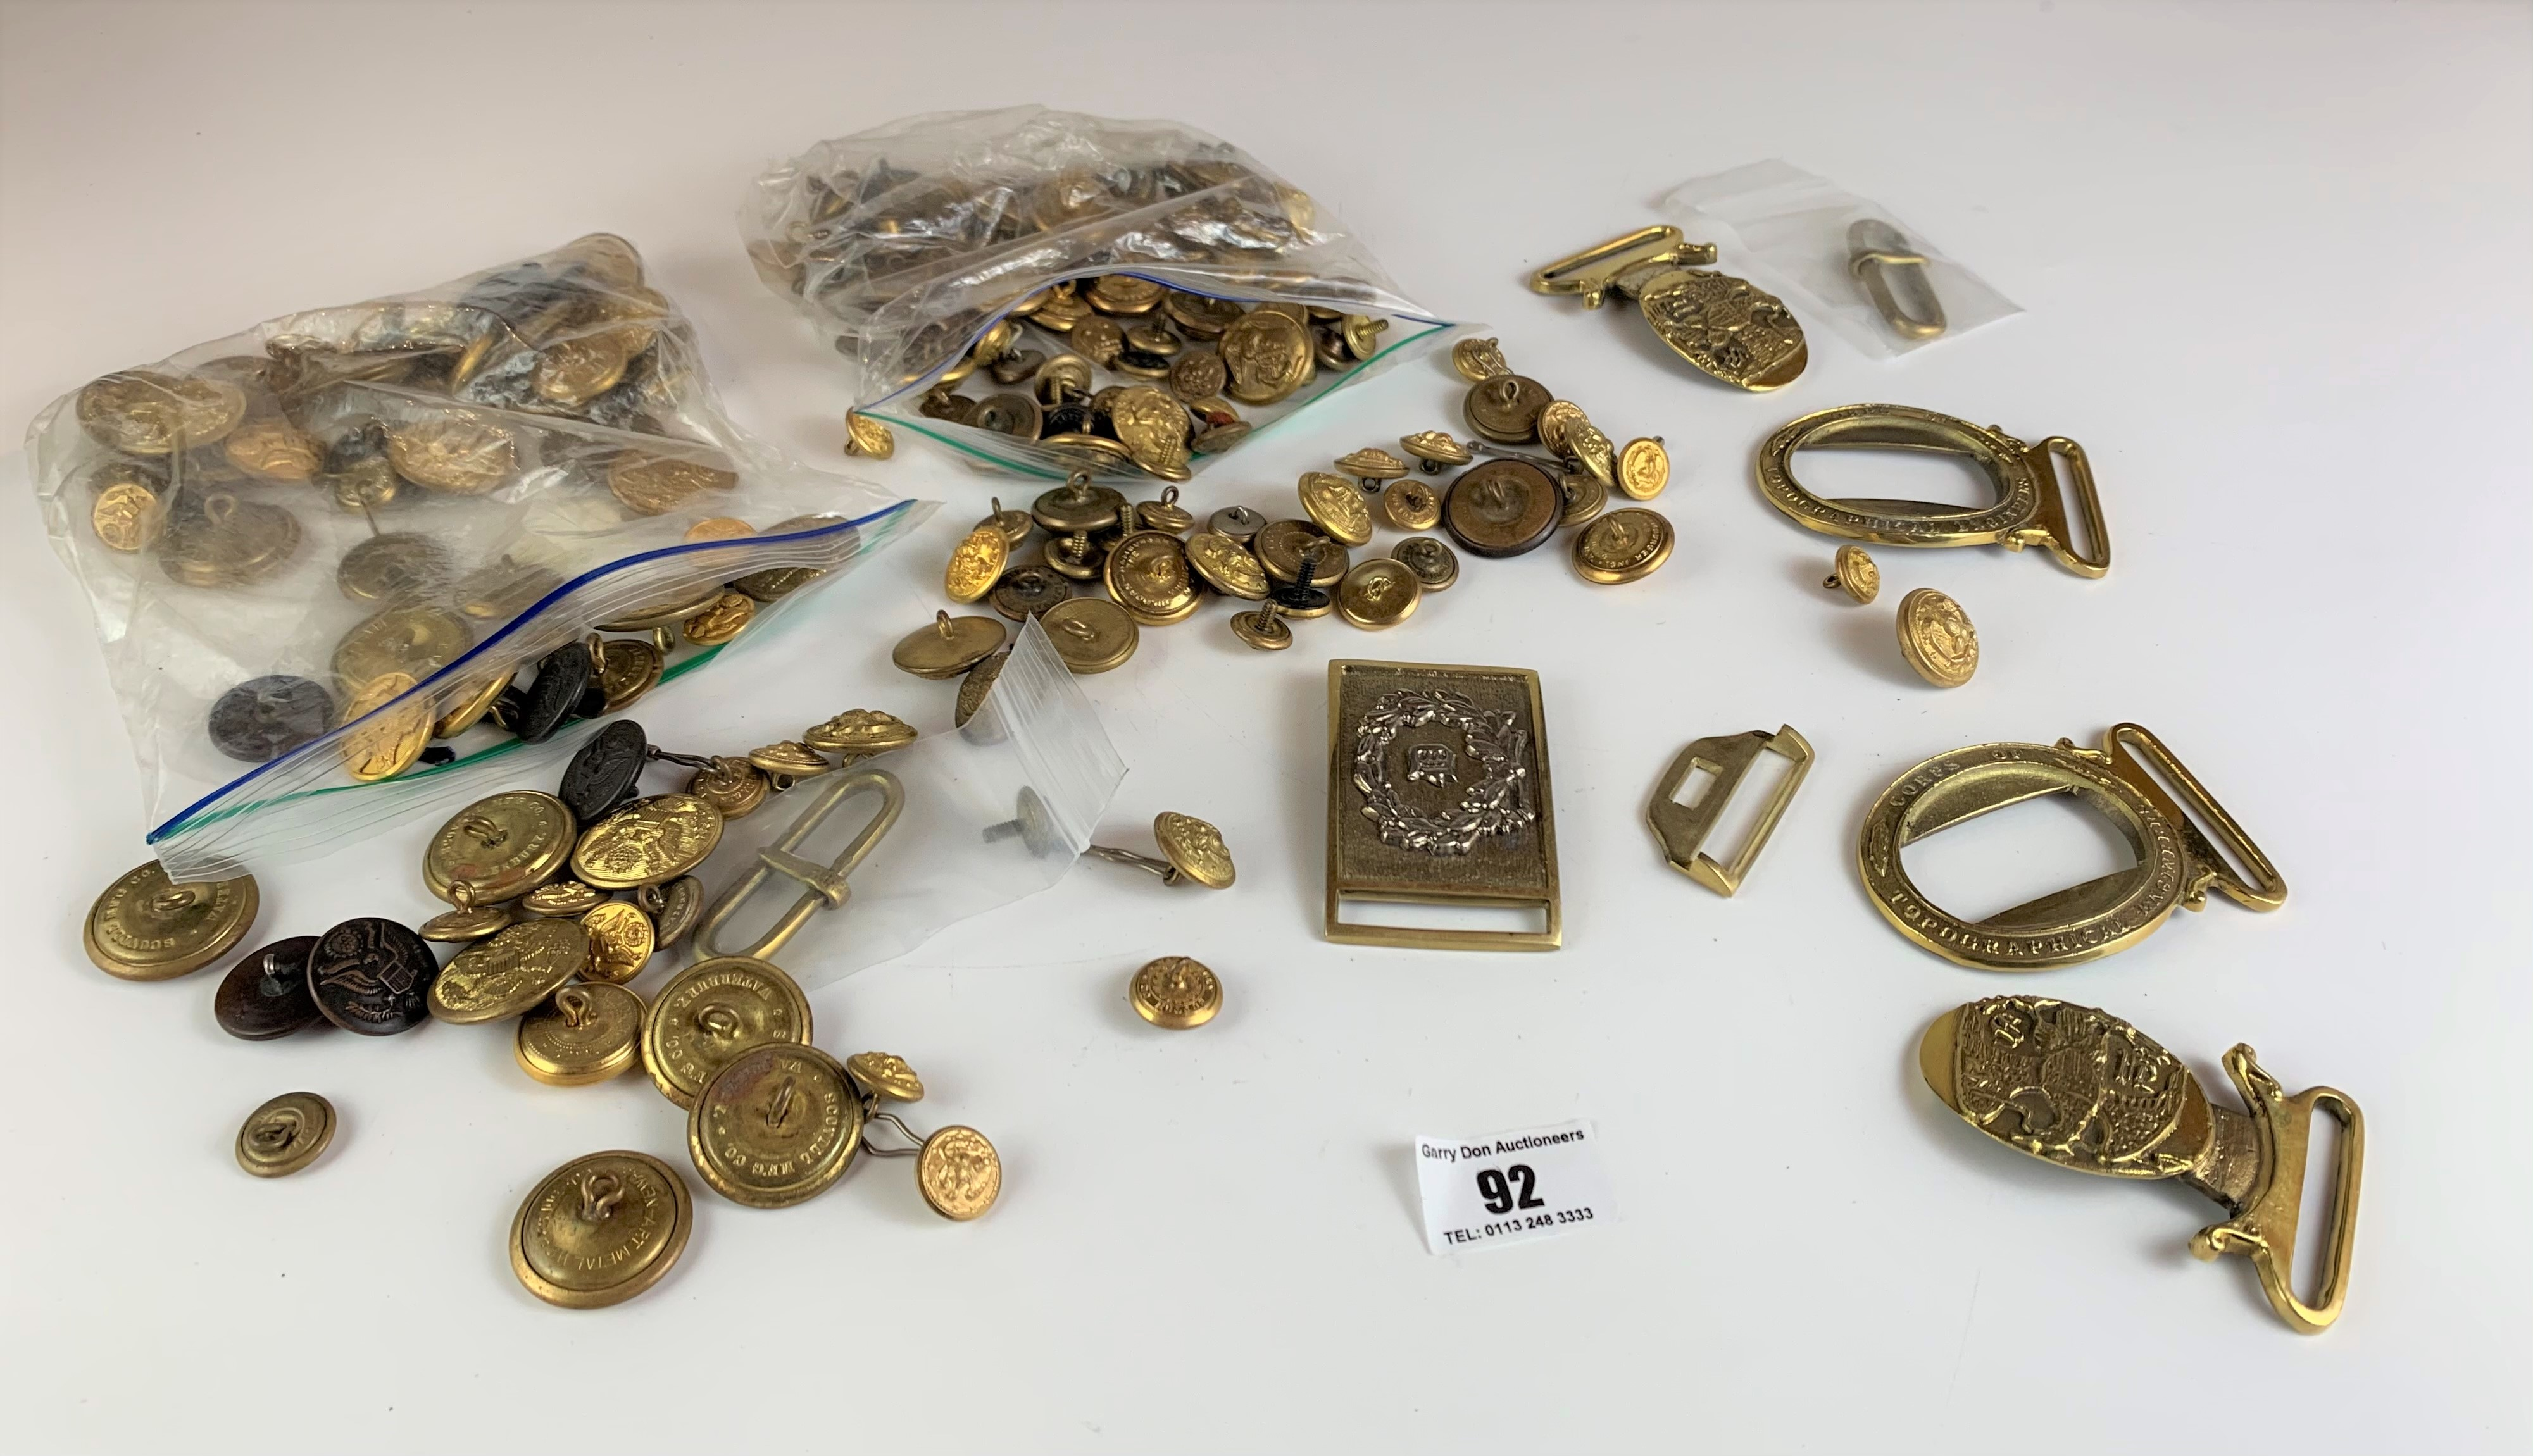 Large bag of assorted brass buttons and belt buckles - Image 2 of 6